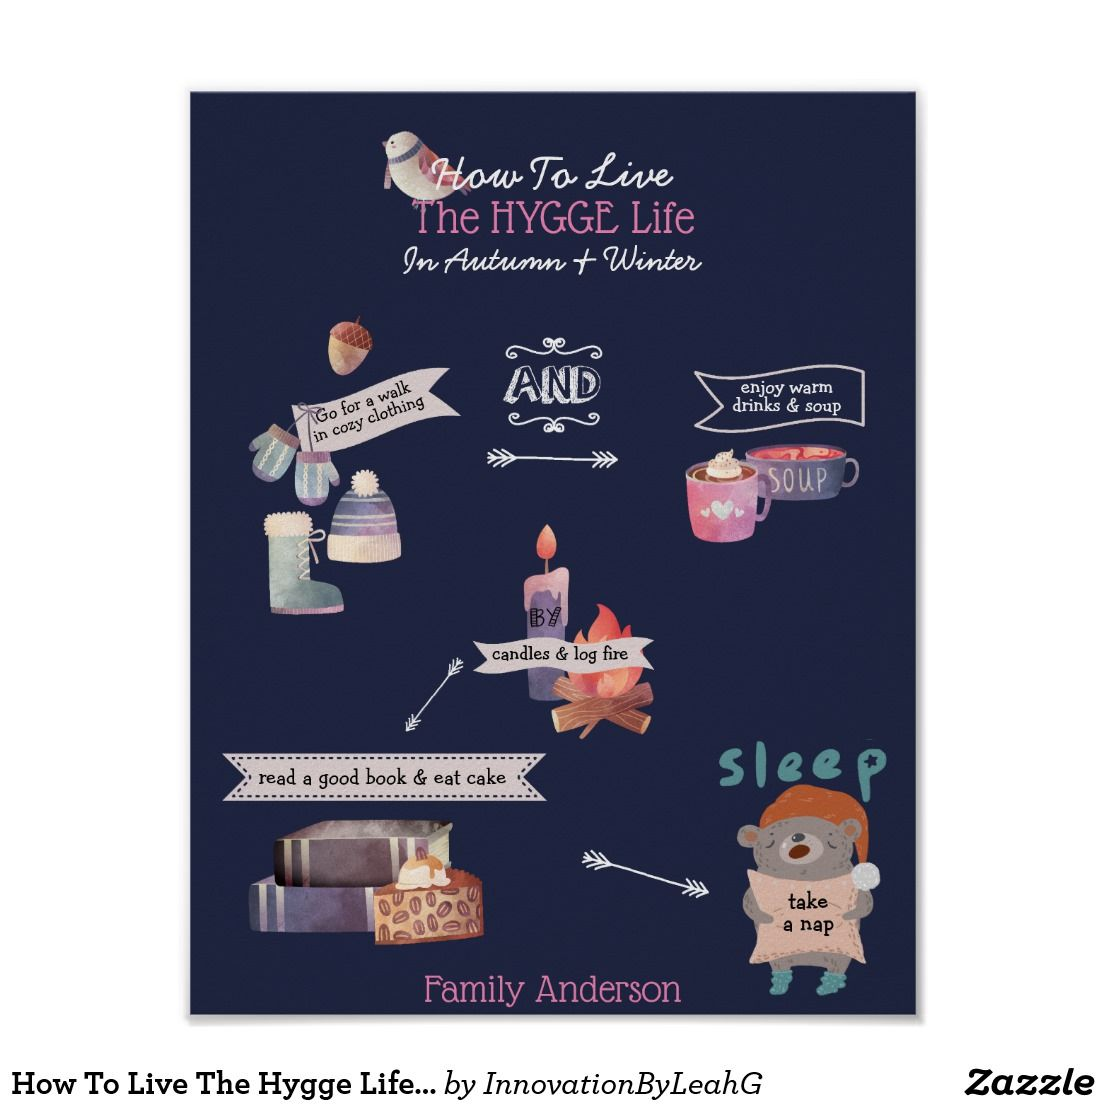 Photo of How To Live The Hygge Life Infographic Custom Poster | Zazzle.com